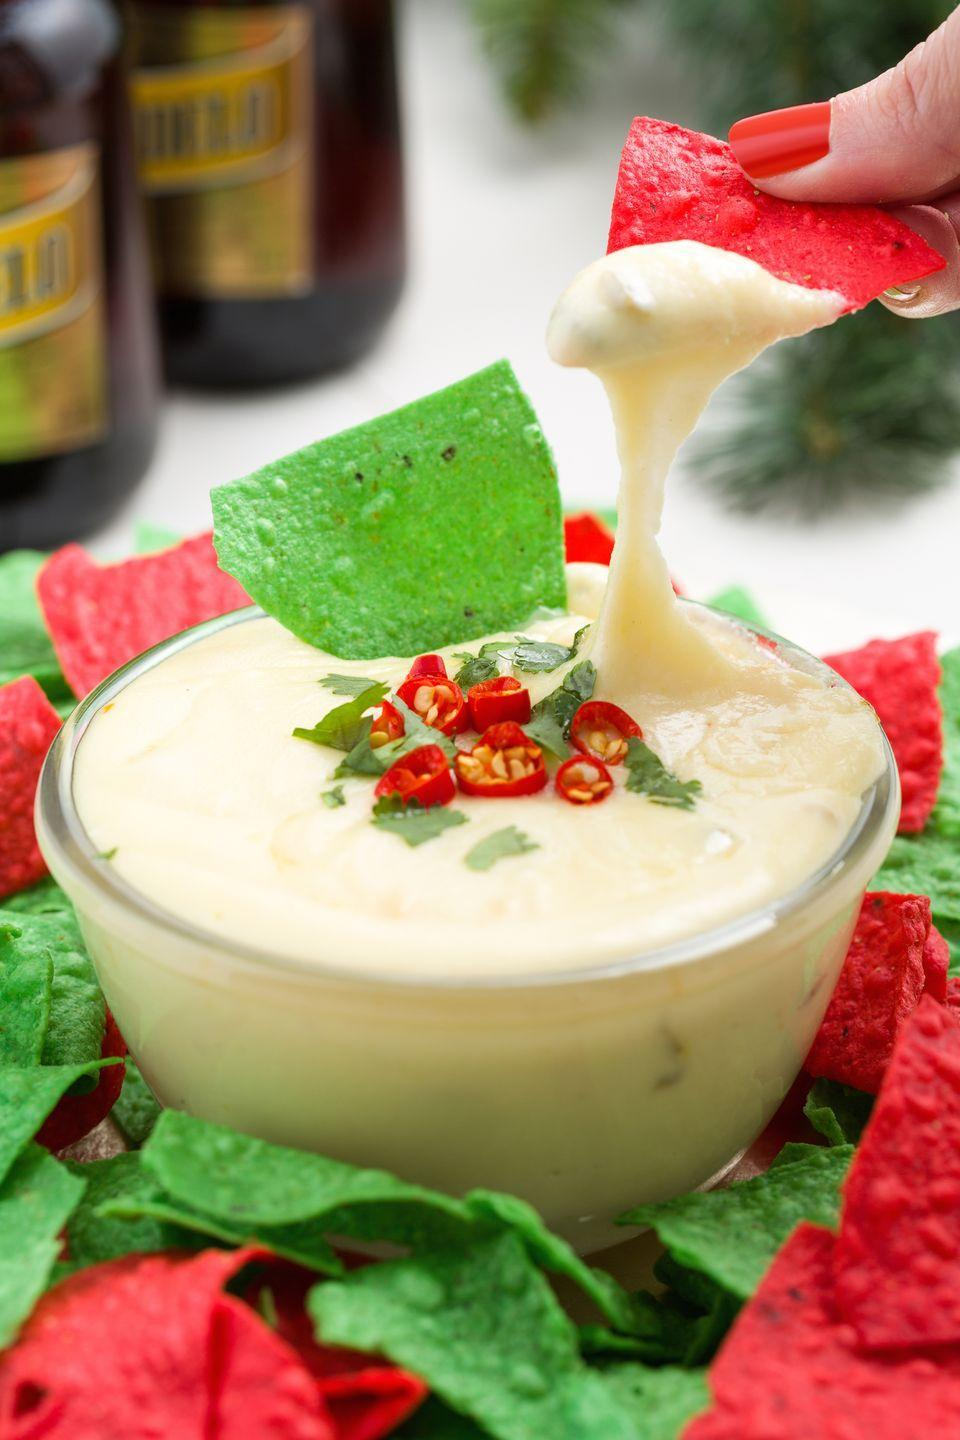 "<p>We're cheesing out over this pepper jack dip.</p><p>Get the recipe from <a href=""https://www.delish.com/cooking/recipe-ideas/recipes/a45172/christmas-queso-recipe/"" rel=""nofollow noopener"" target=""_blank"" data-ylk=""slk:Delish"" class=""link rapid-noclick-resp"">Delish</a>.</p>"